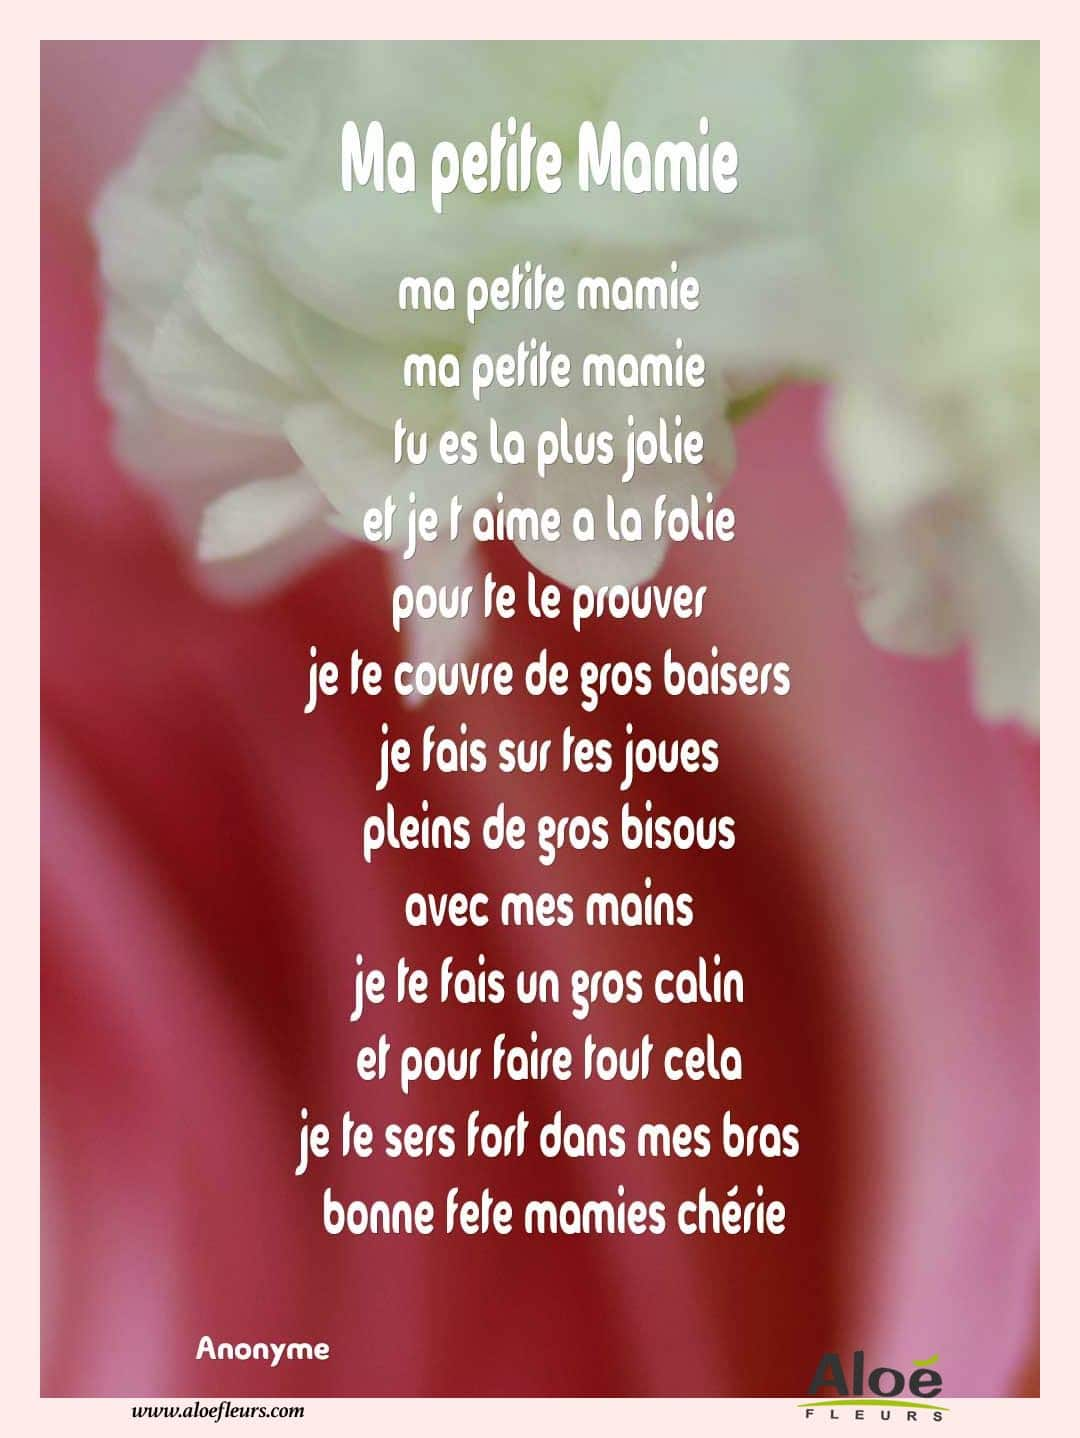 Poemes pour la fete des meres la fete des meres pictures to pin on green home - Fleur fete des meres ...